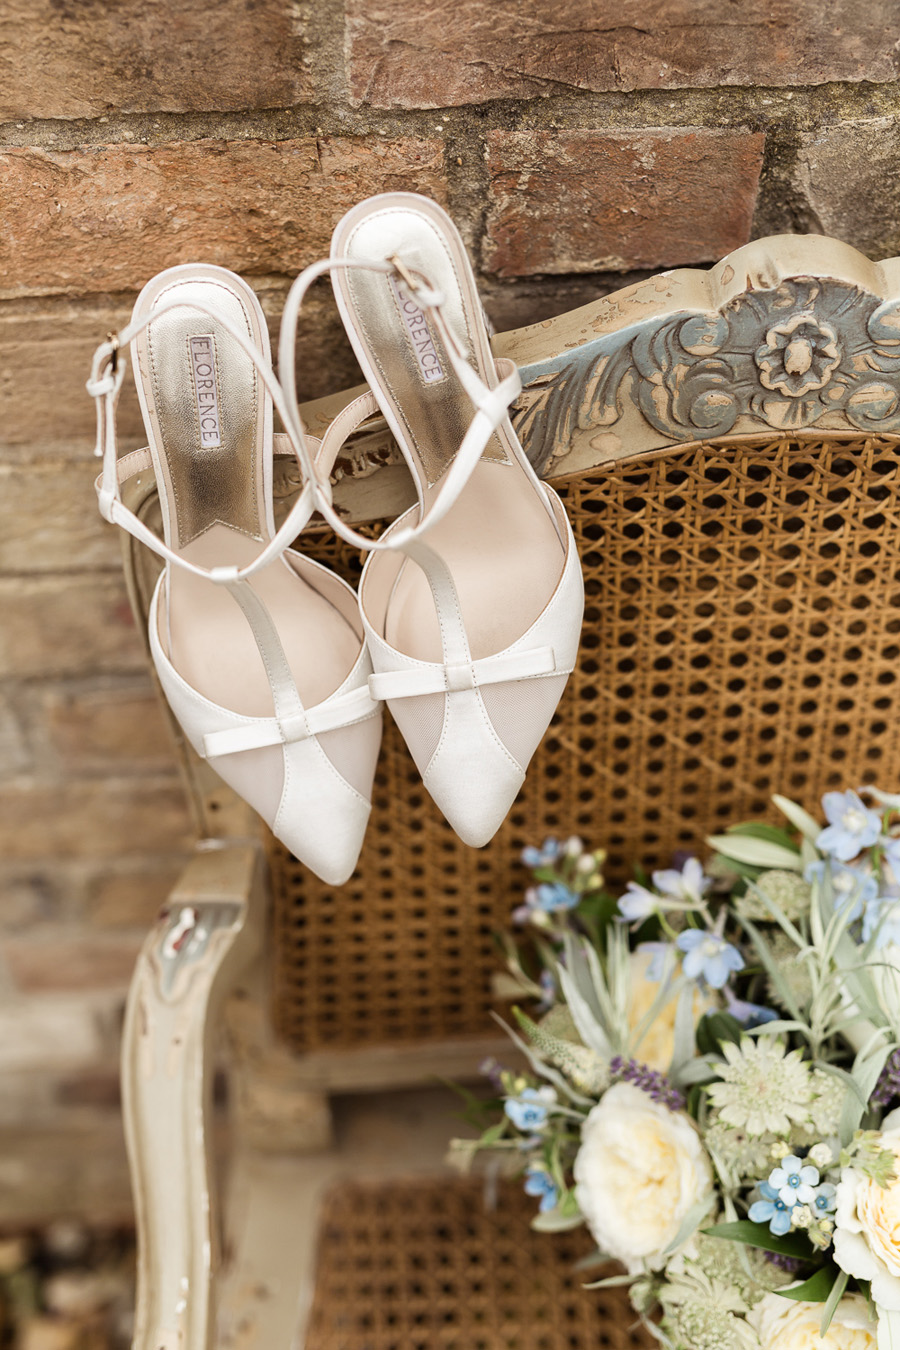 Cambridgeshire venue Lattenbury Hill wedding style ideas. Images by Sarah Brookes Photography (5)